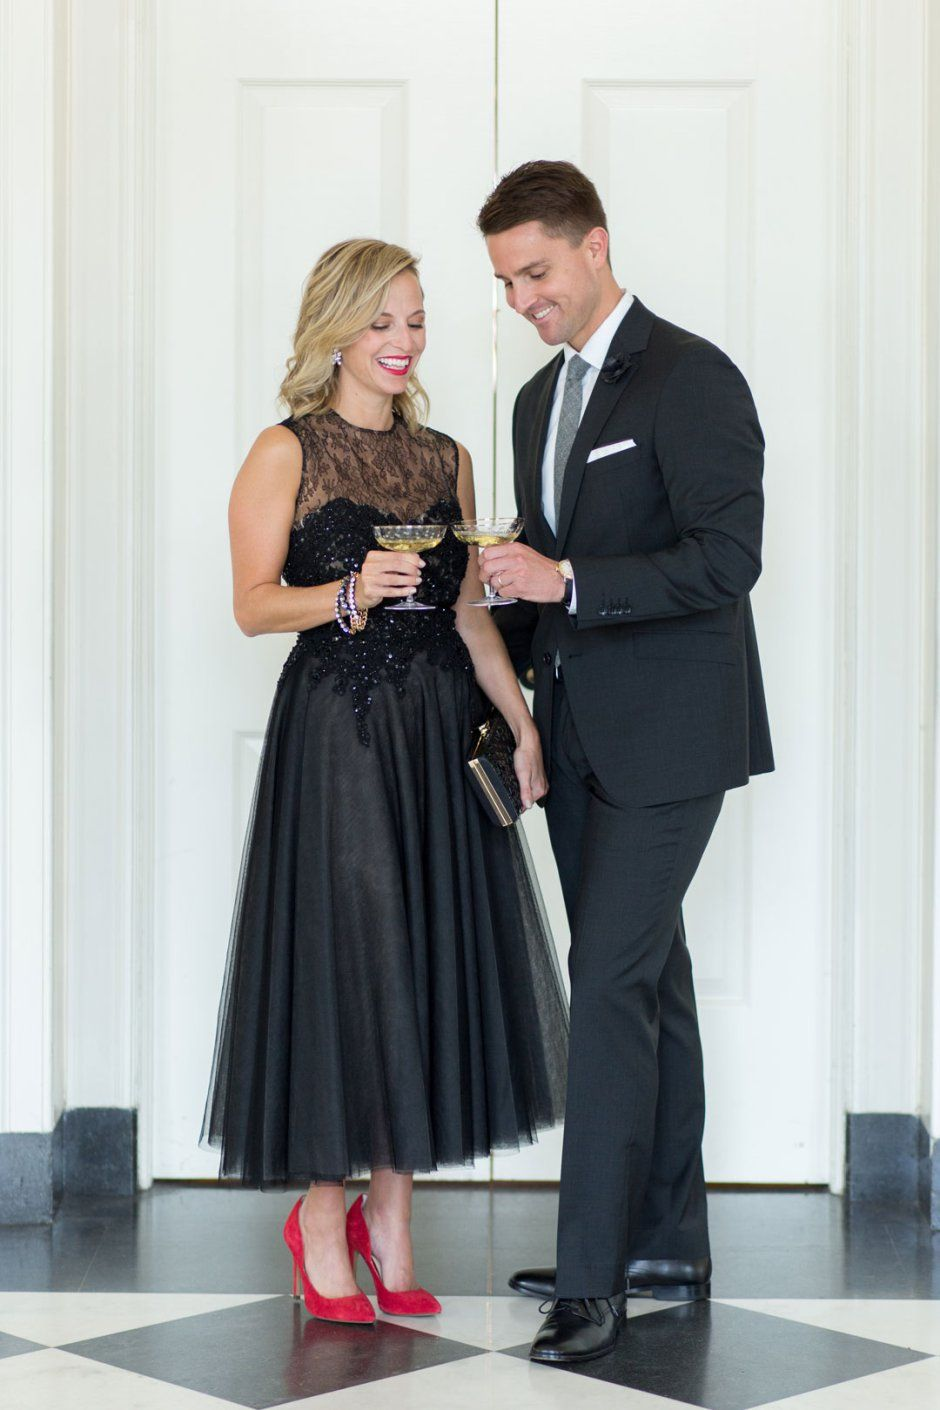 What to wear to a black tie optional wedding pinterest black tie rent the runway dress for a black tie optional wedding mens suit for a wedding photo by jennifer kathryn photography junglespirit Image collections